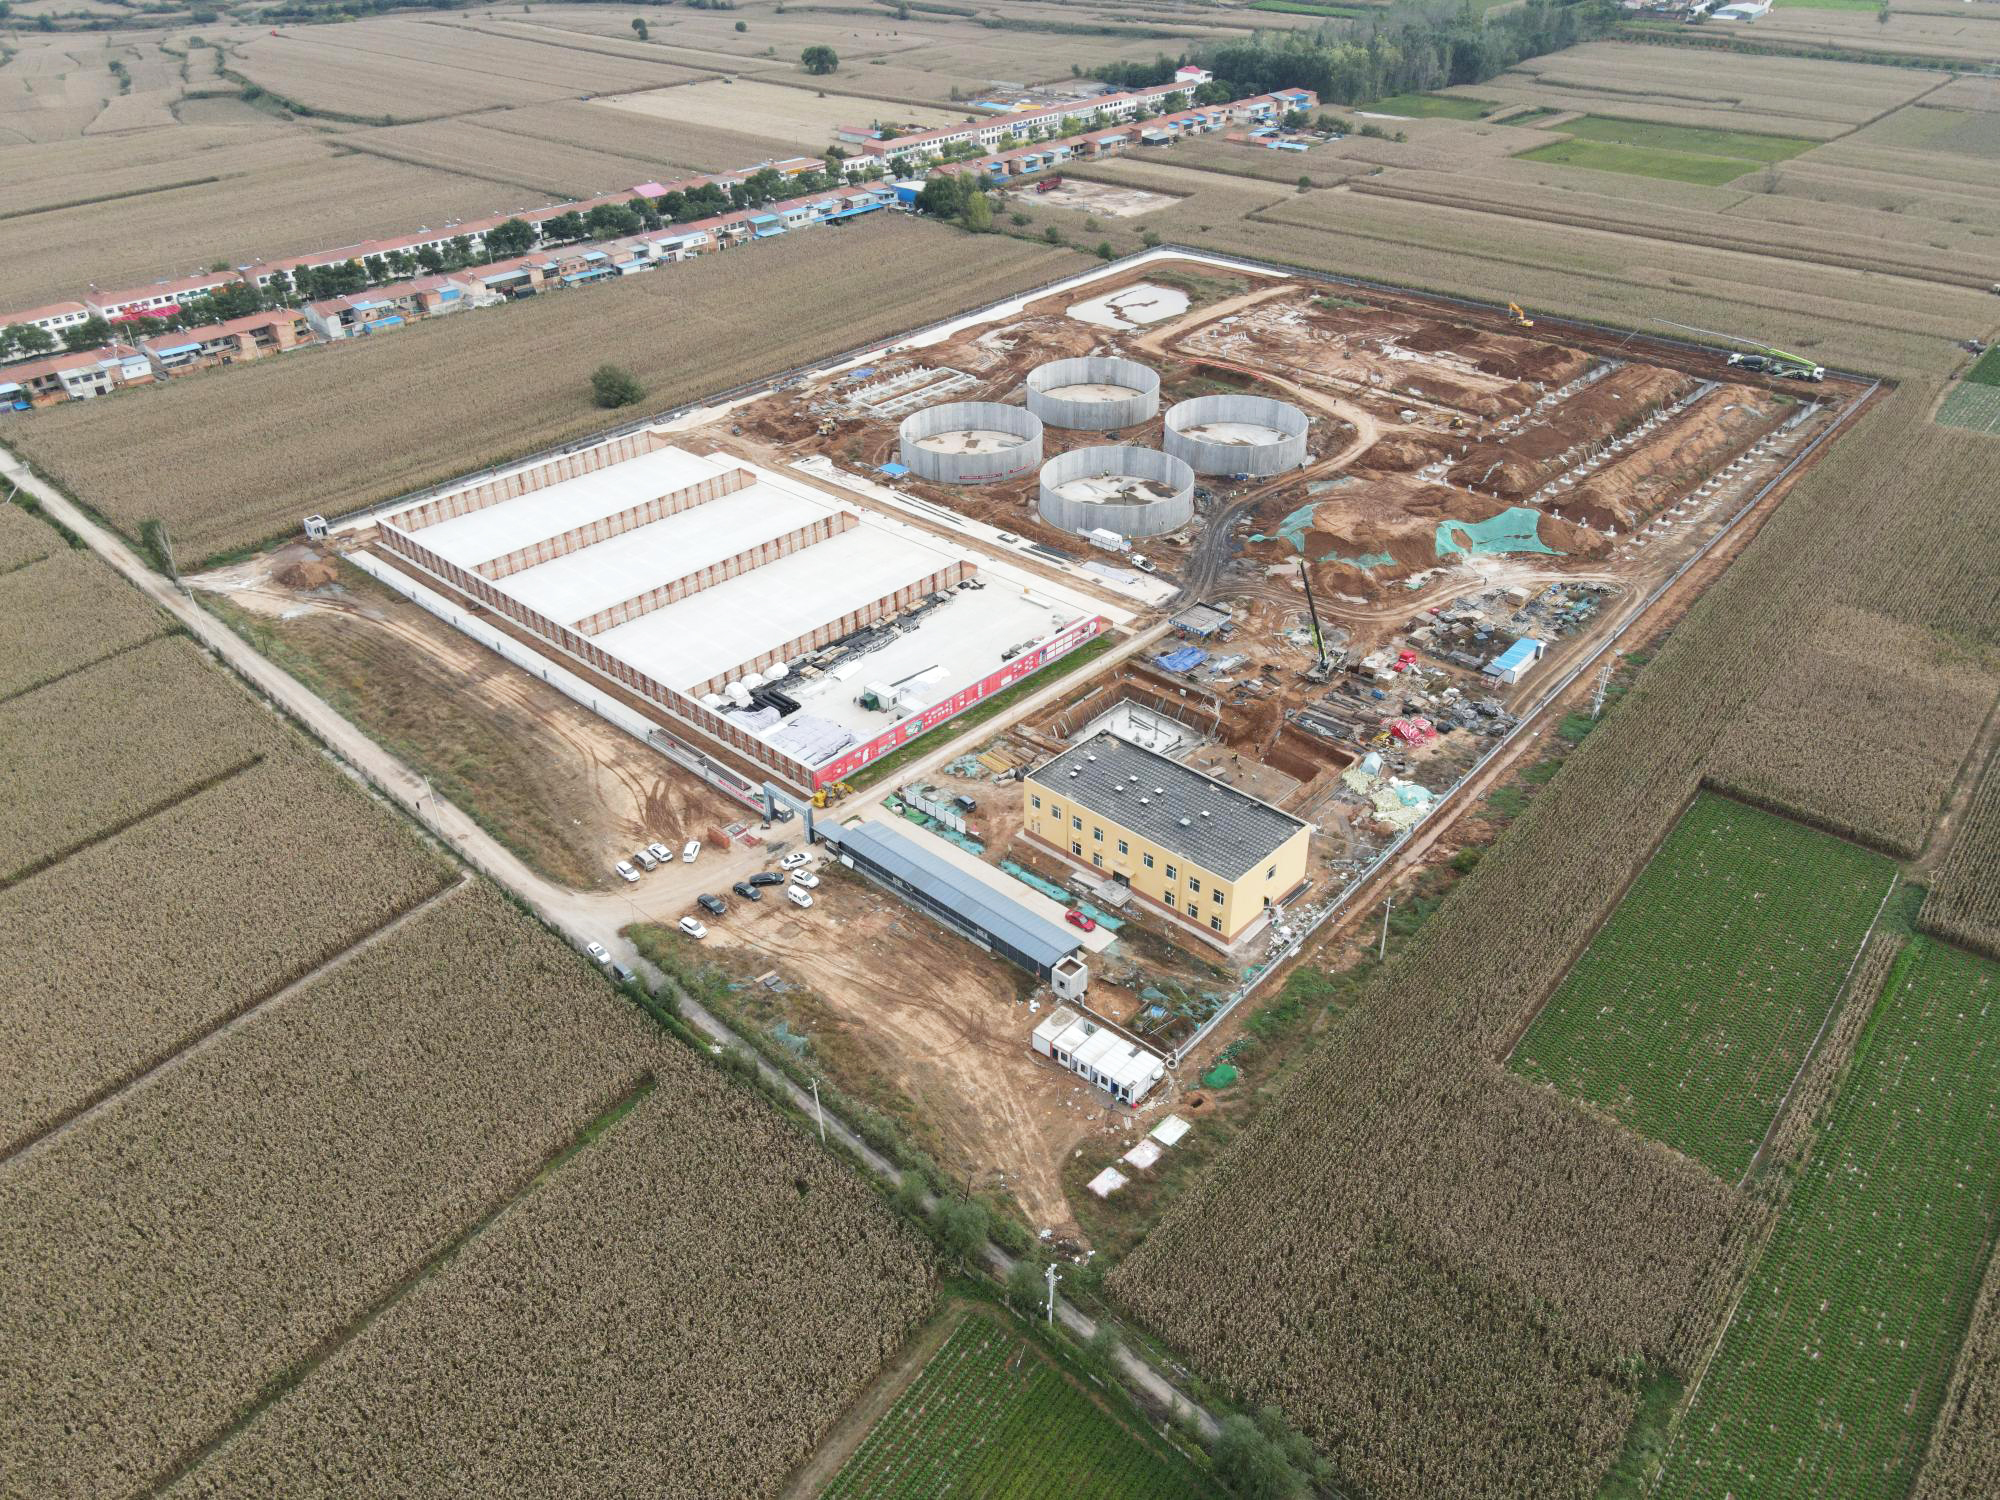 Construction work on the eighth EnviTec biogas plant in China in full progress